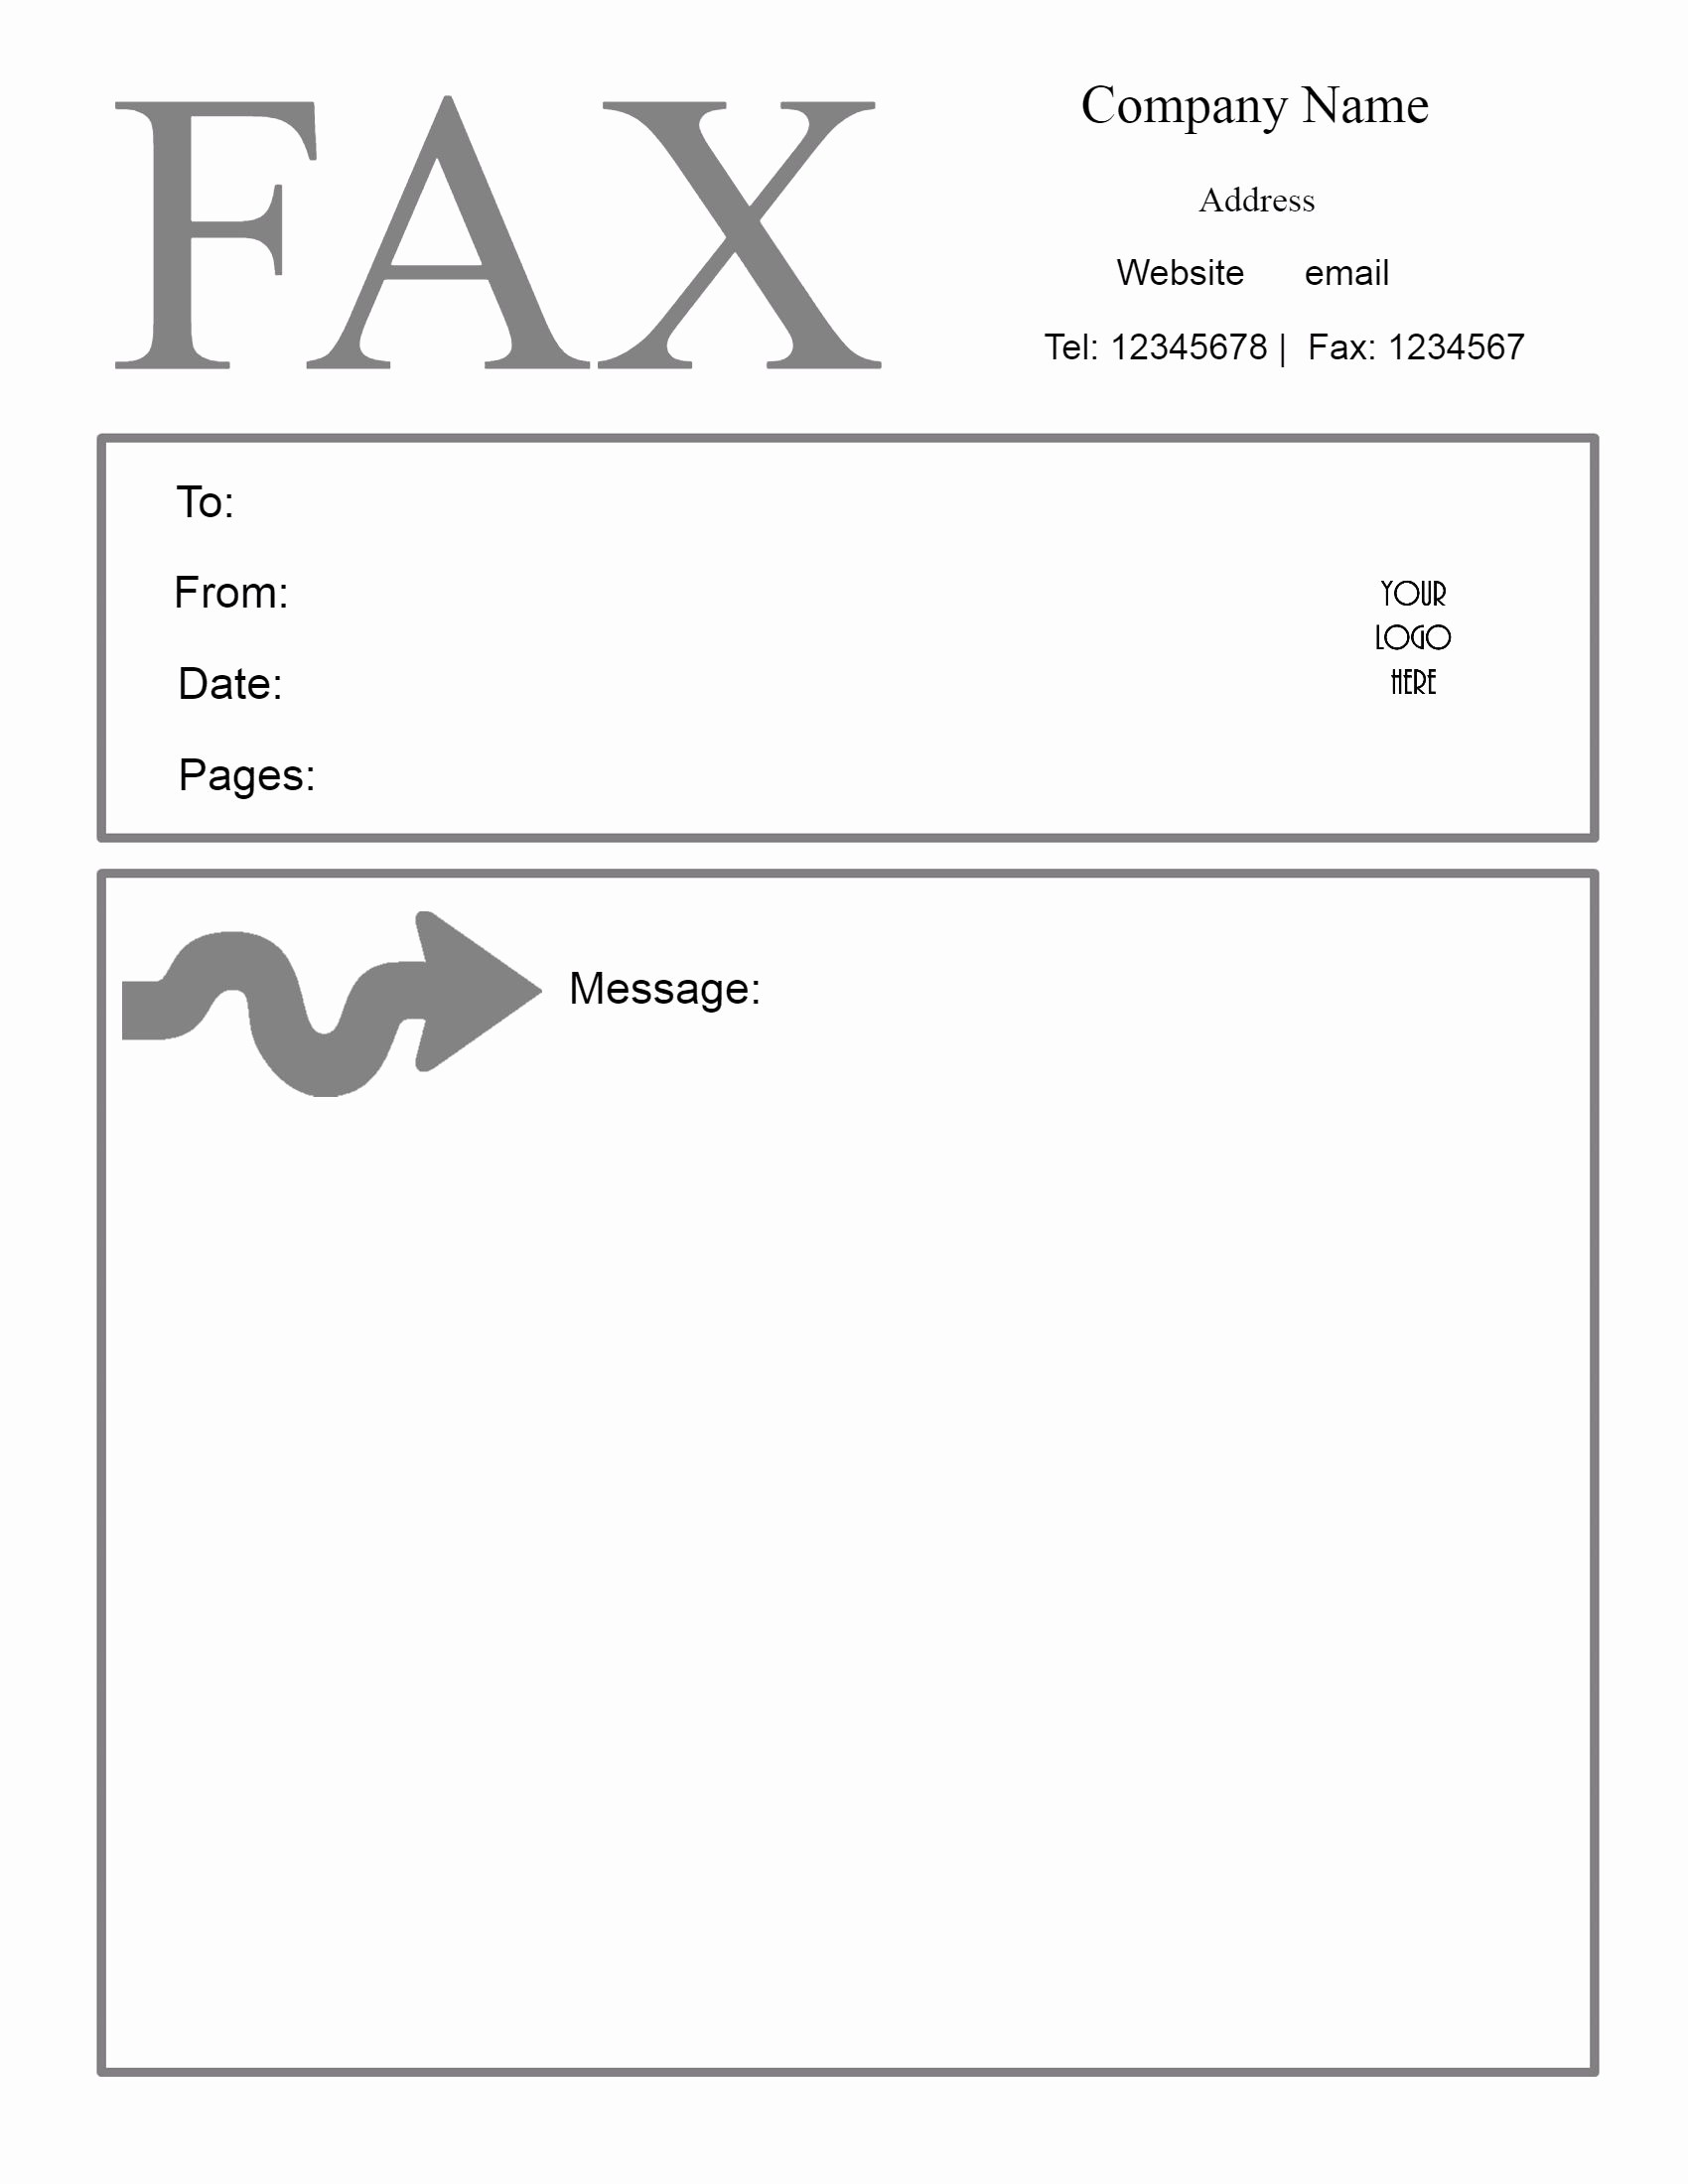 Samples Fax Cover Sheet Printable Free Elegant Template